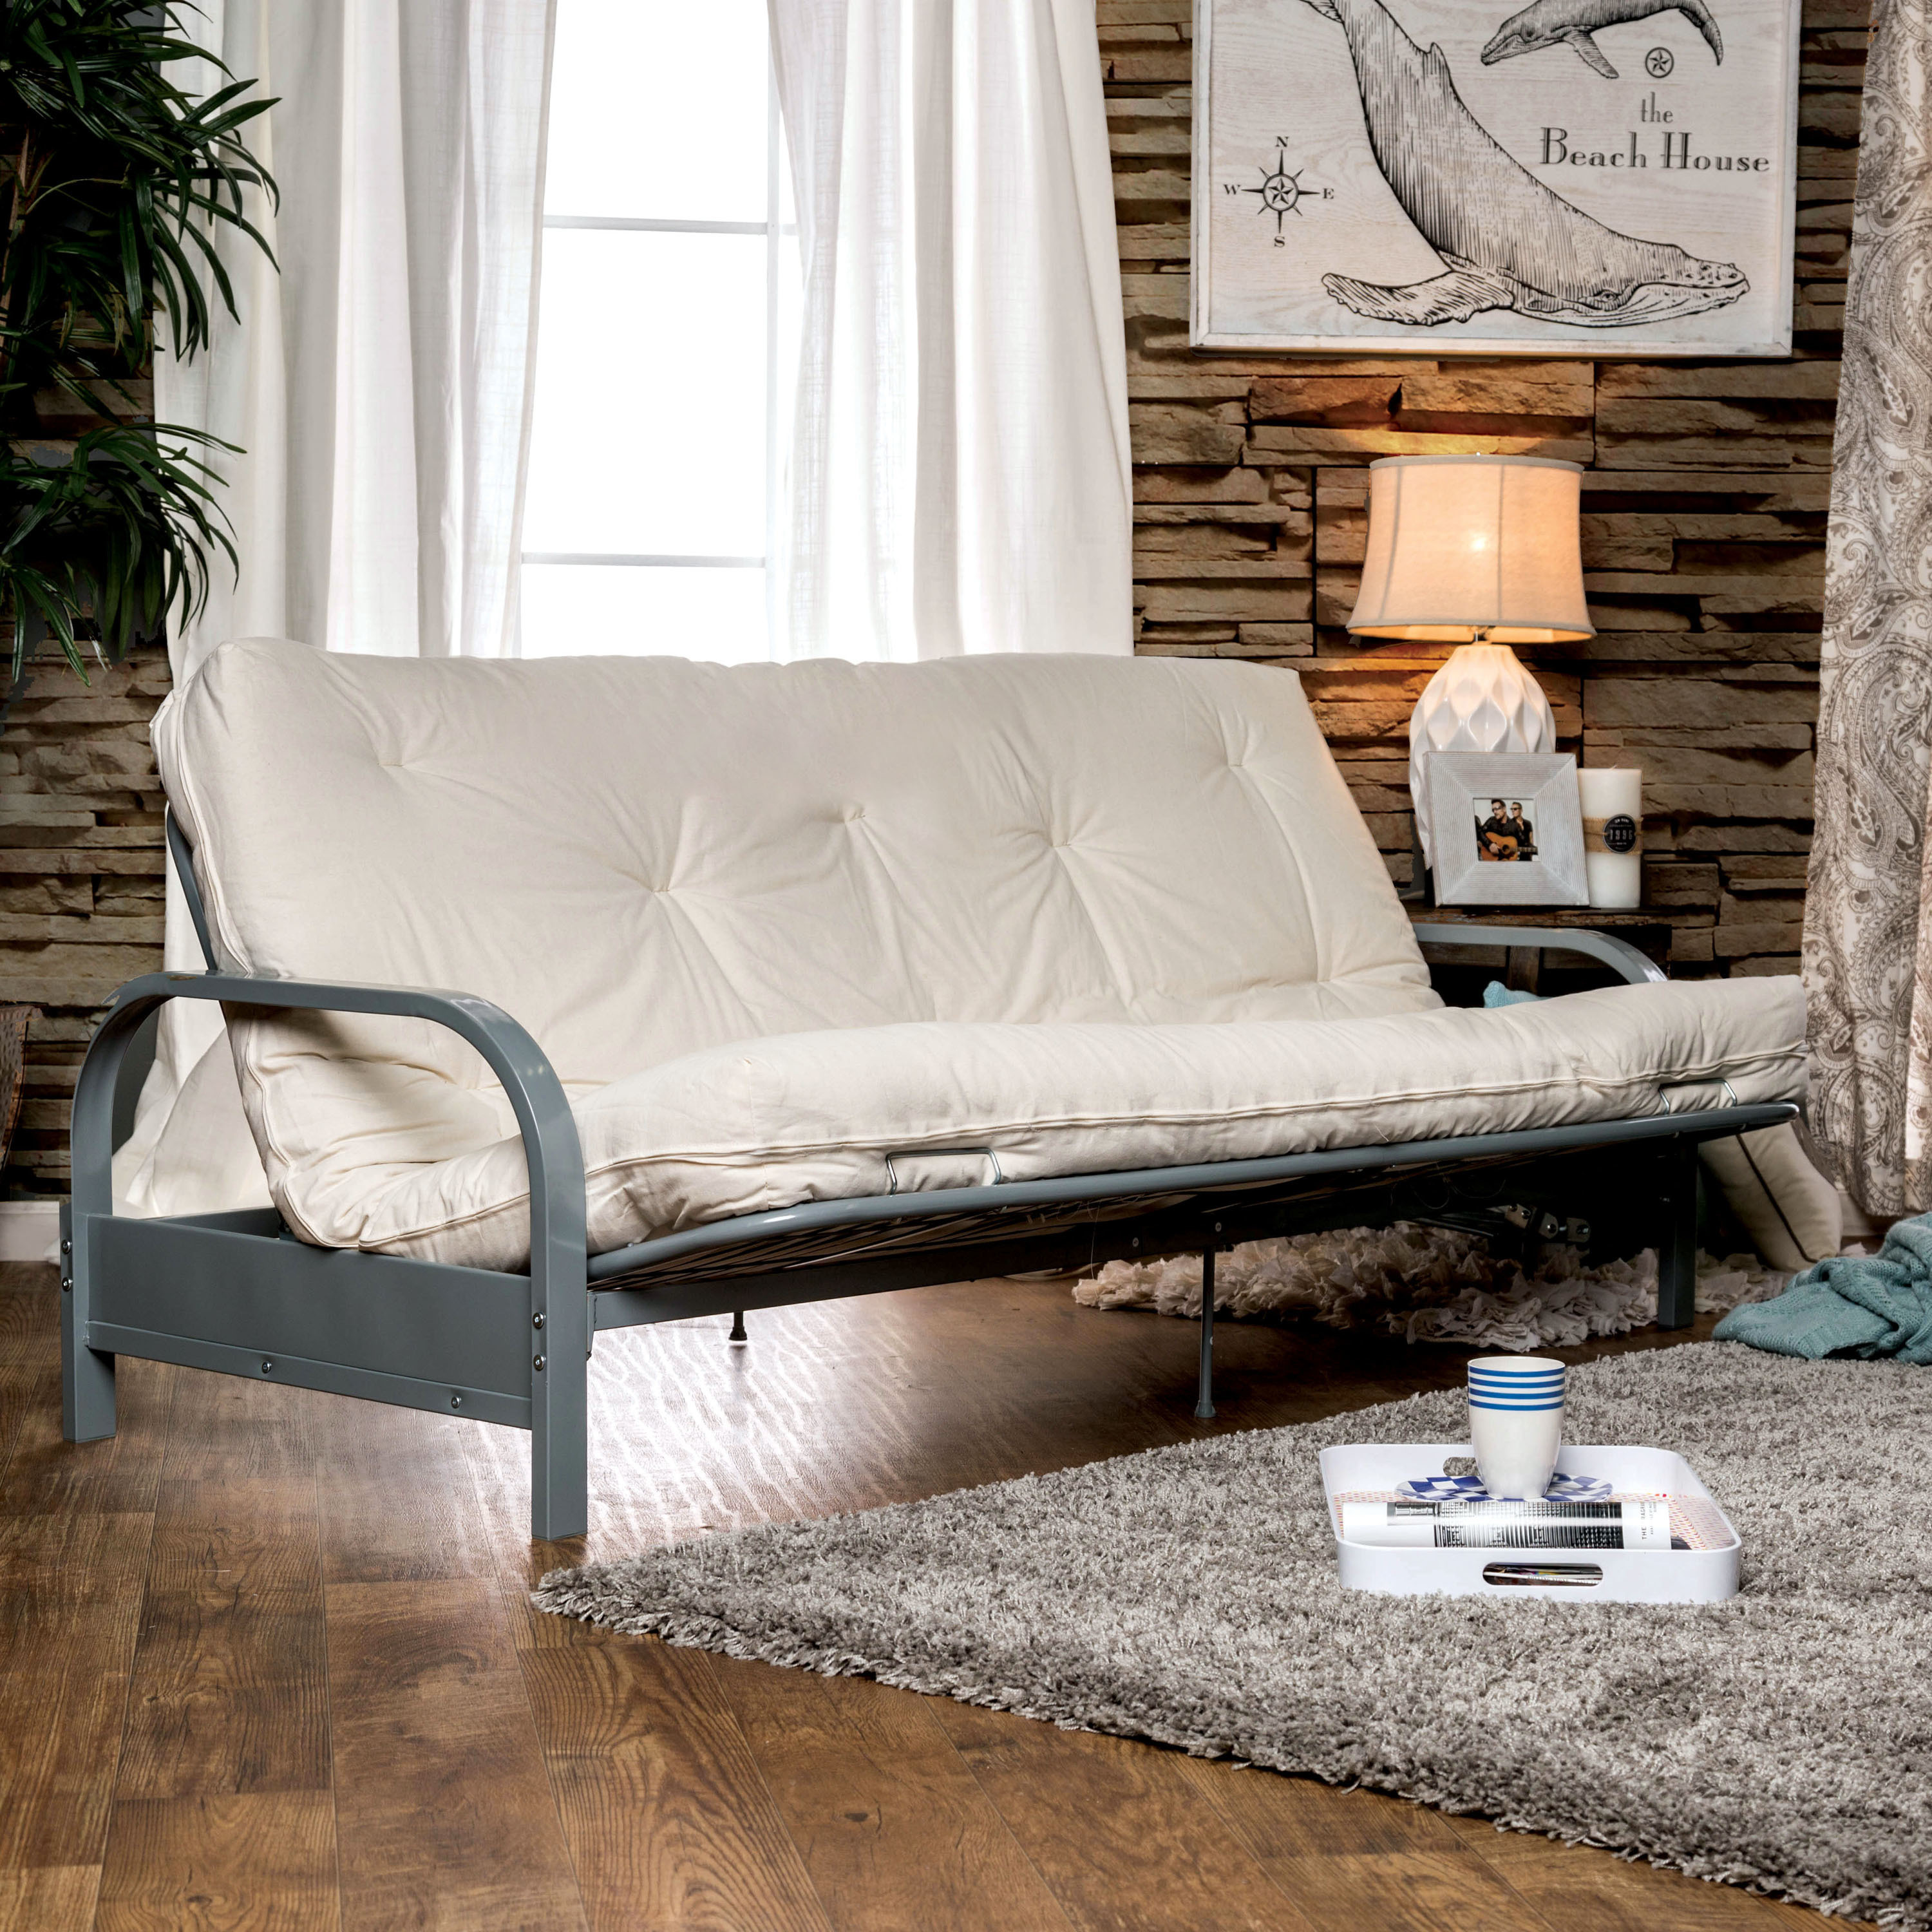 Furniture of America  Amaya Contemporary Tufted 8-inch Futon Mattress